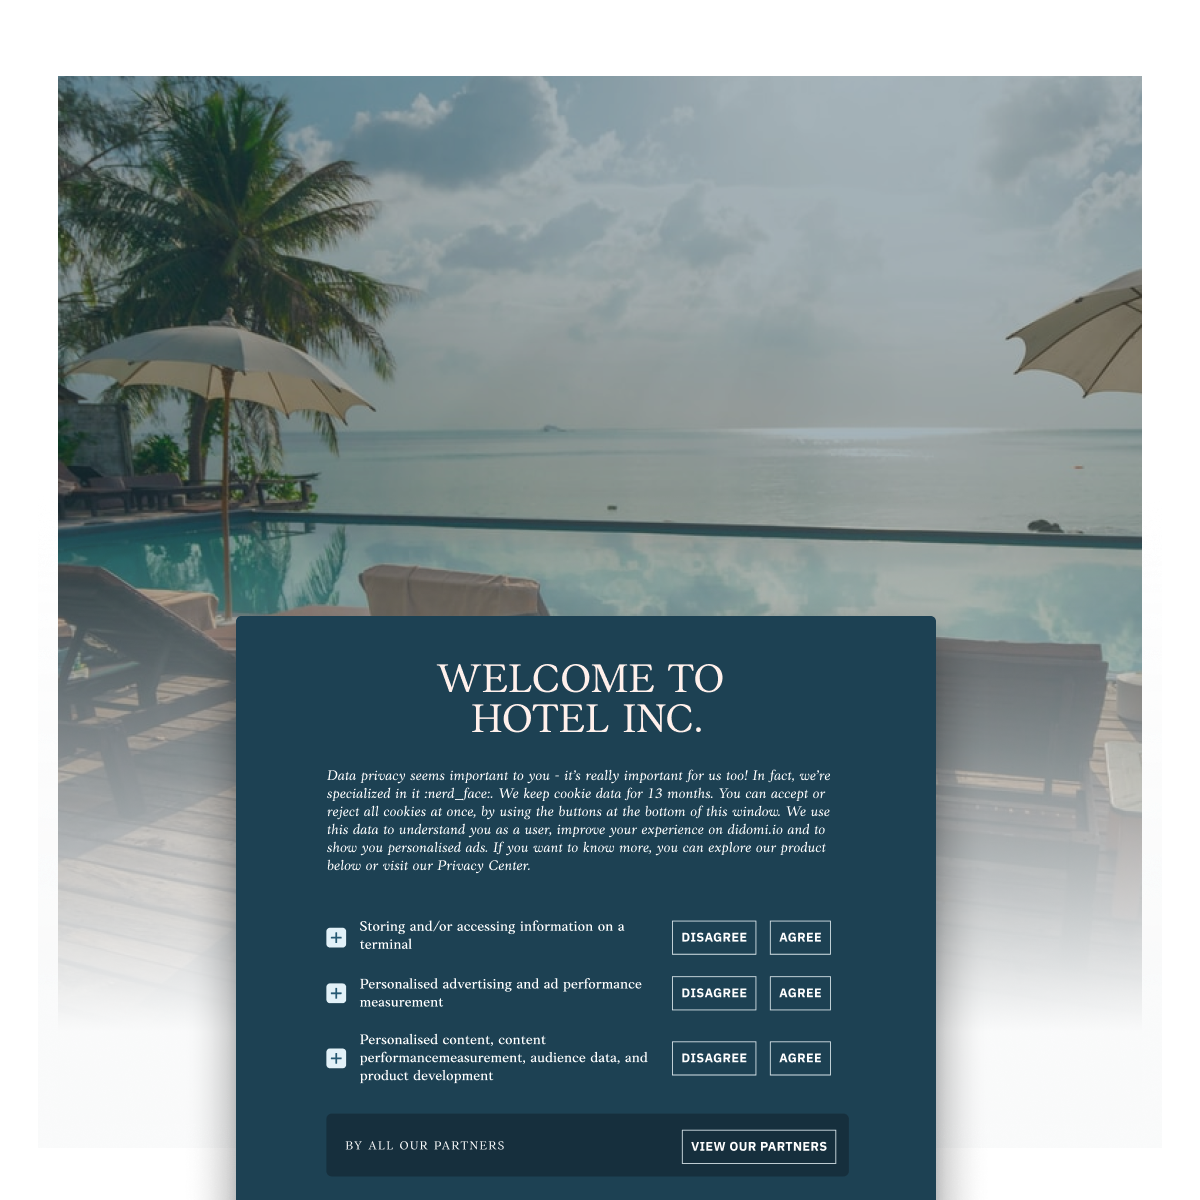 Illustration of a consumer showing love to the hotel or travel agency